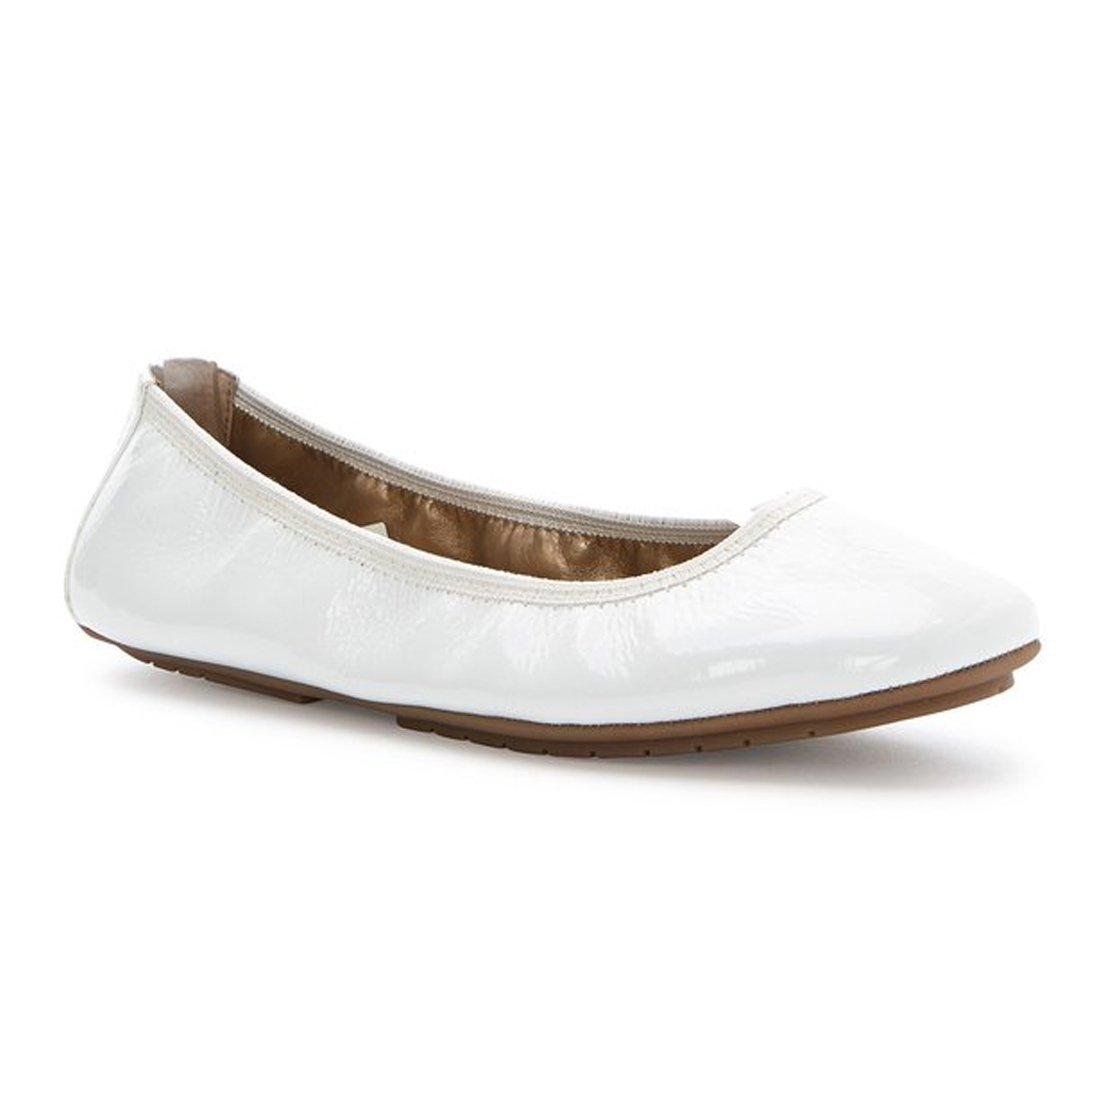 Me Too Womens Icon Ballet Flat Shoes B01JSUGSIA 10 B(M) US|White Patent